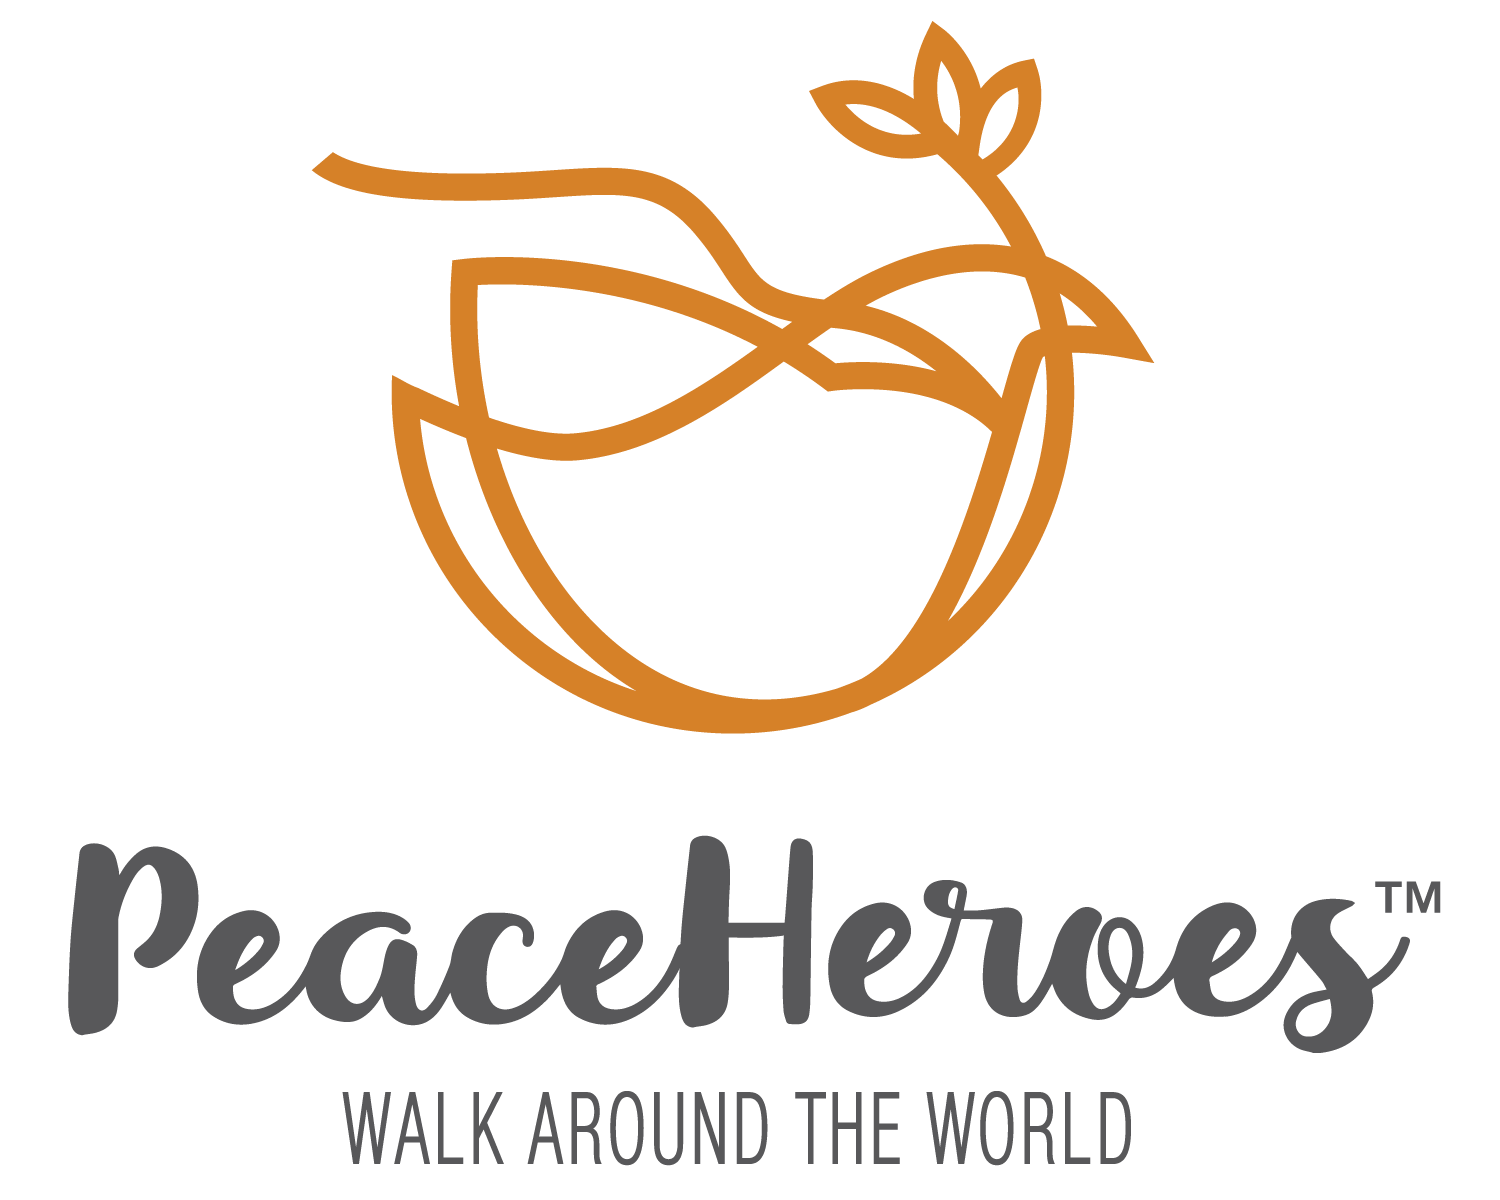 Rotary Club of San Marcos California - Peace Heros Walk in Carlsbad - March 19